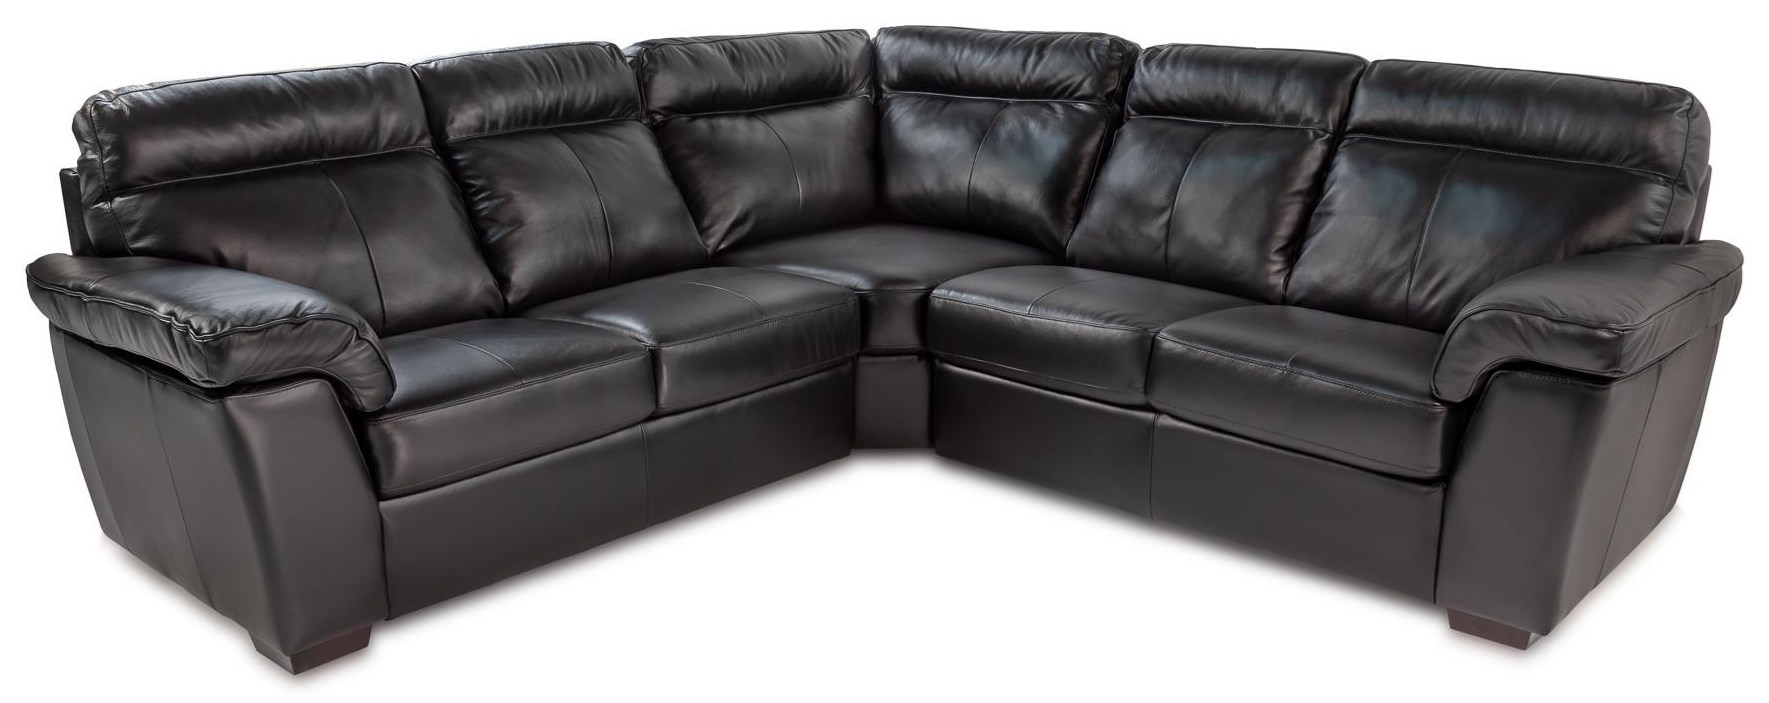 Sofas Online Valencia Valencia 3pc Leather Sectional Sofa W Pillow Arms By Palliser At Rotmans